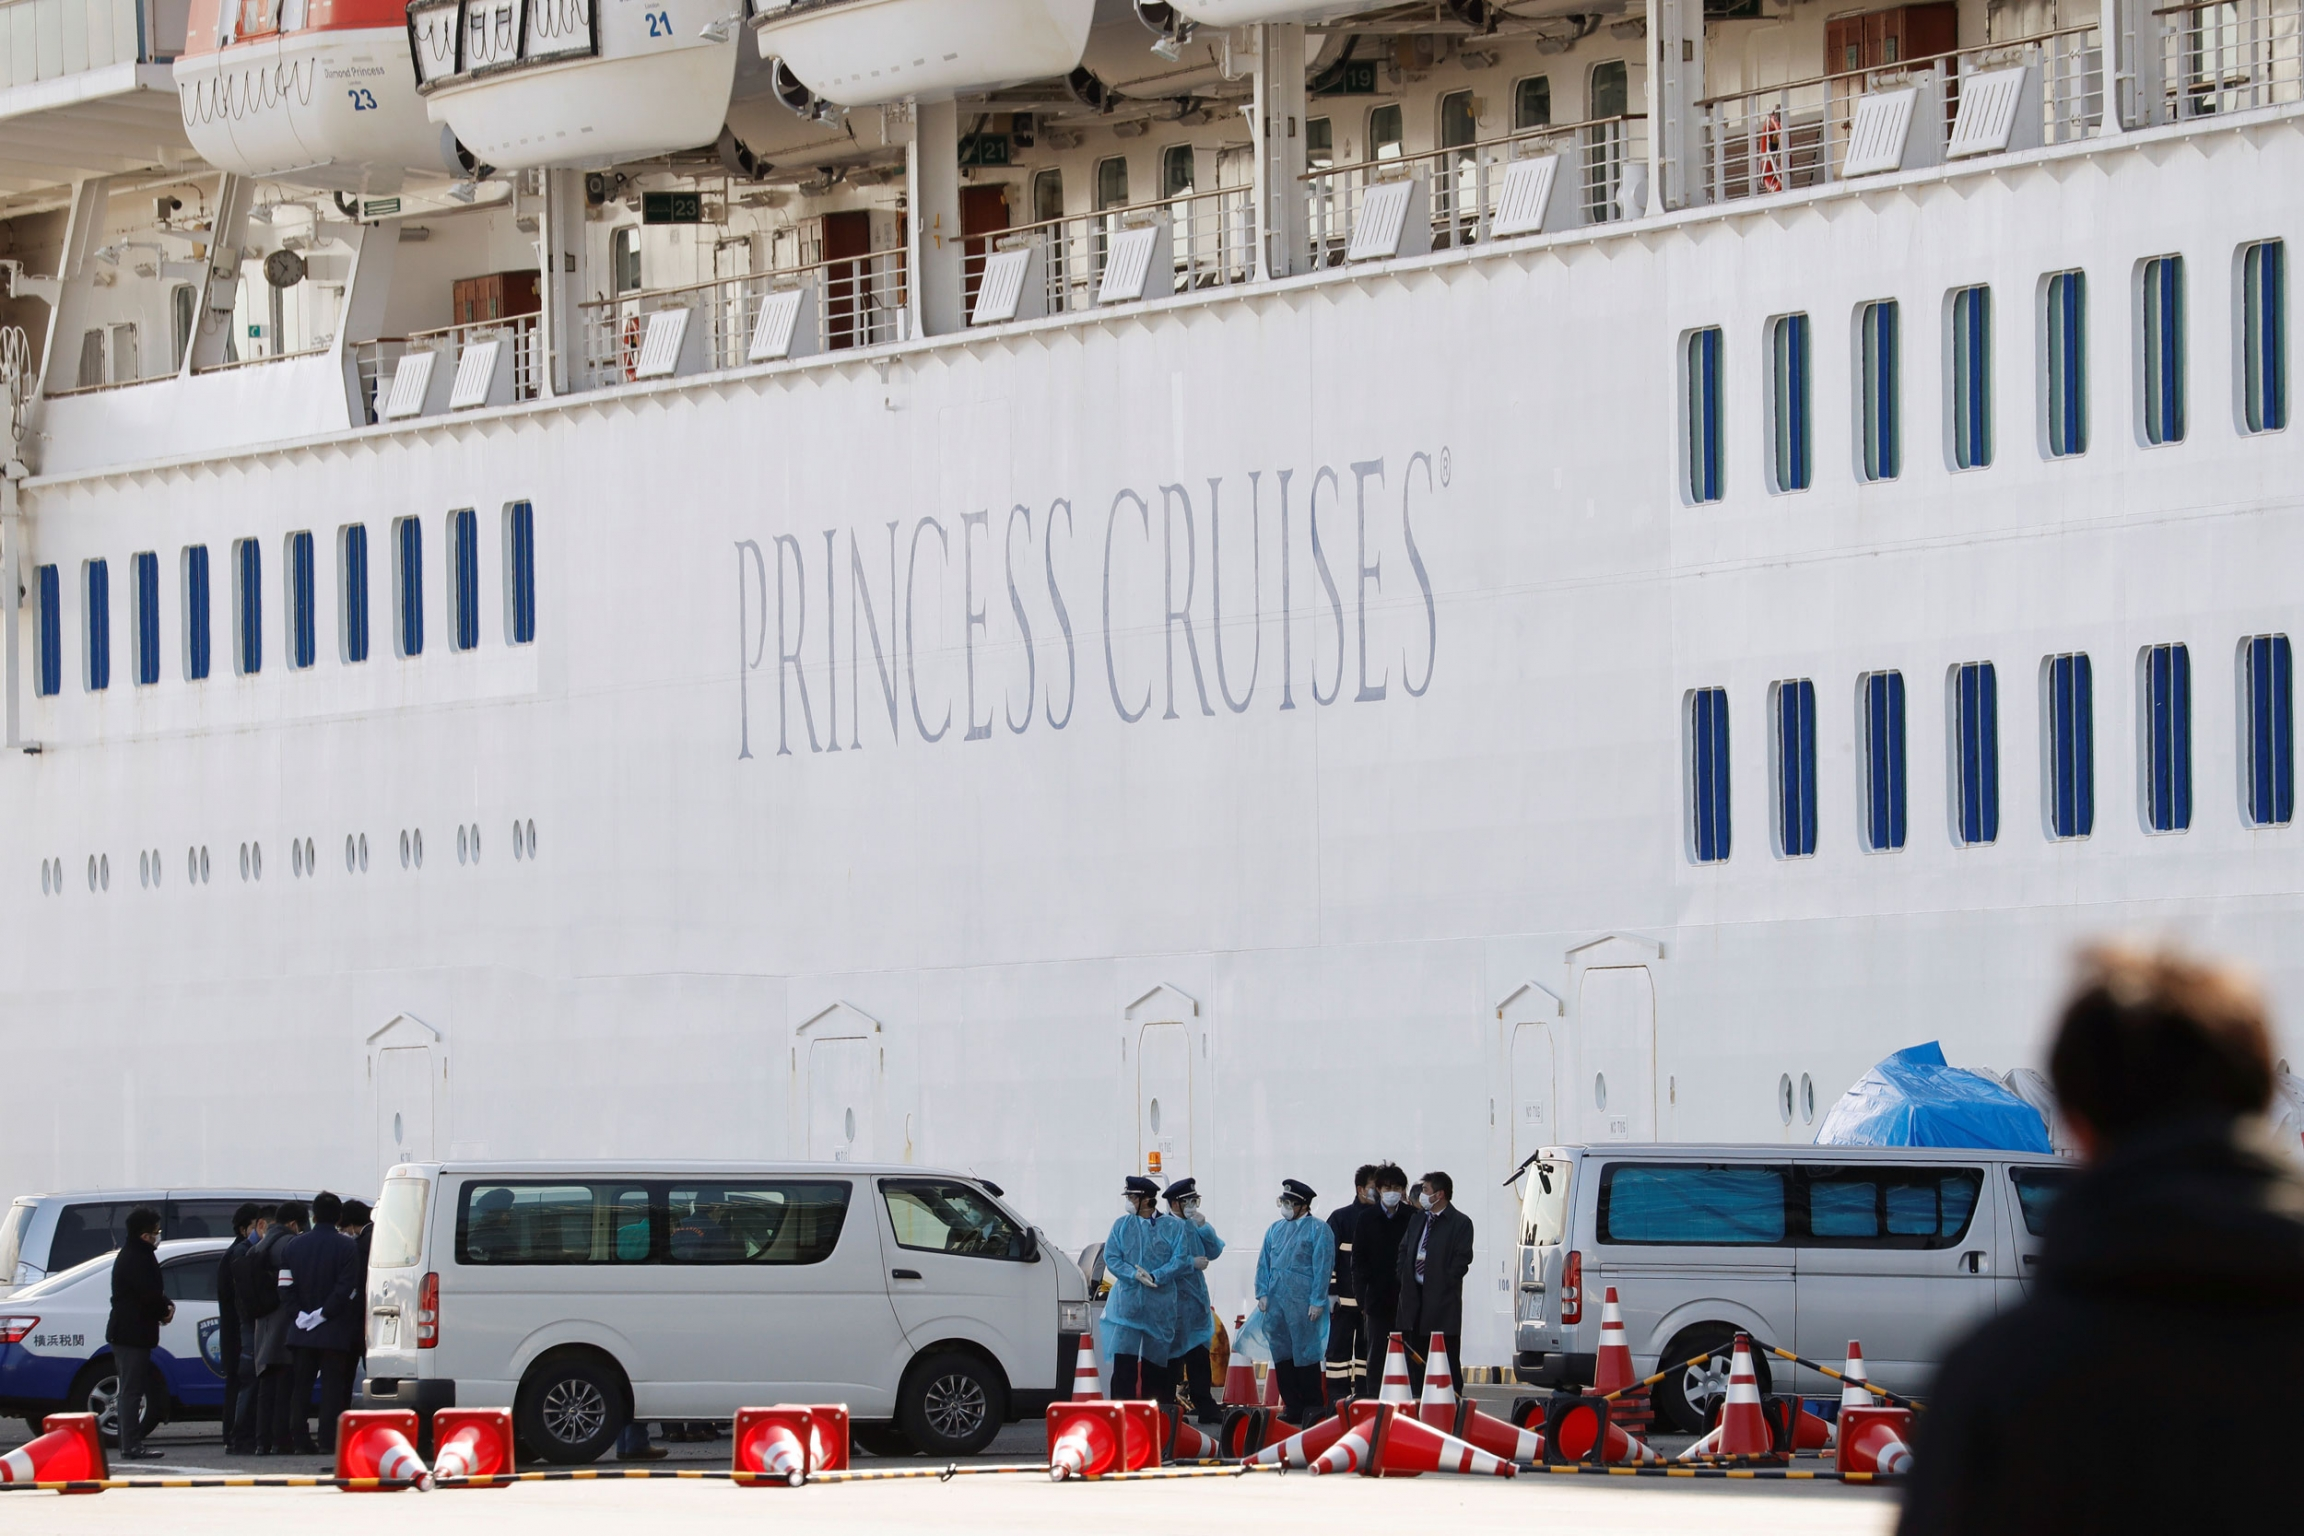 Several vans are shown parked next to a cruise ship with personnel wearing masks stand nearby,